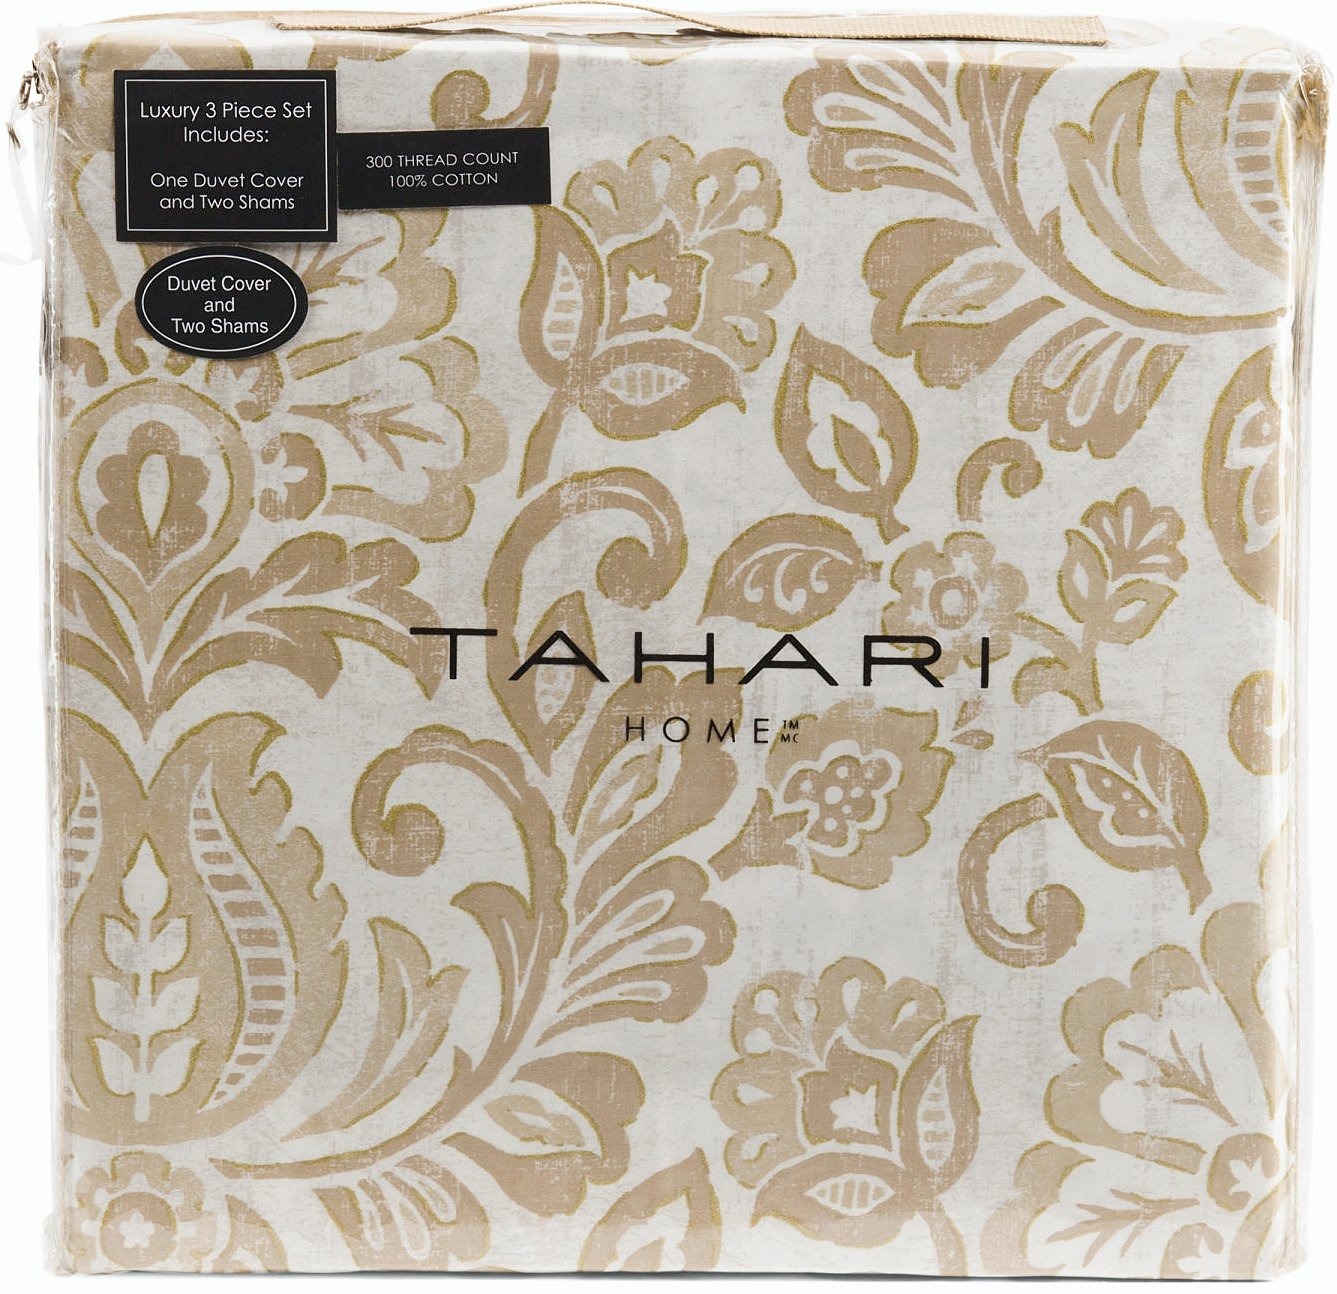 Amazon.com: Victorian Floral Damask Duvet Quilt Cover By Tahari Home, Warm  Tan Cream And Gold Antique Bohemian Scroll Print 3pc Cotton Sateen Bedding  Set ...